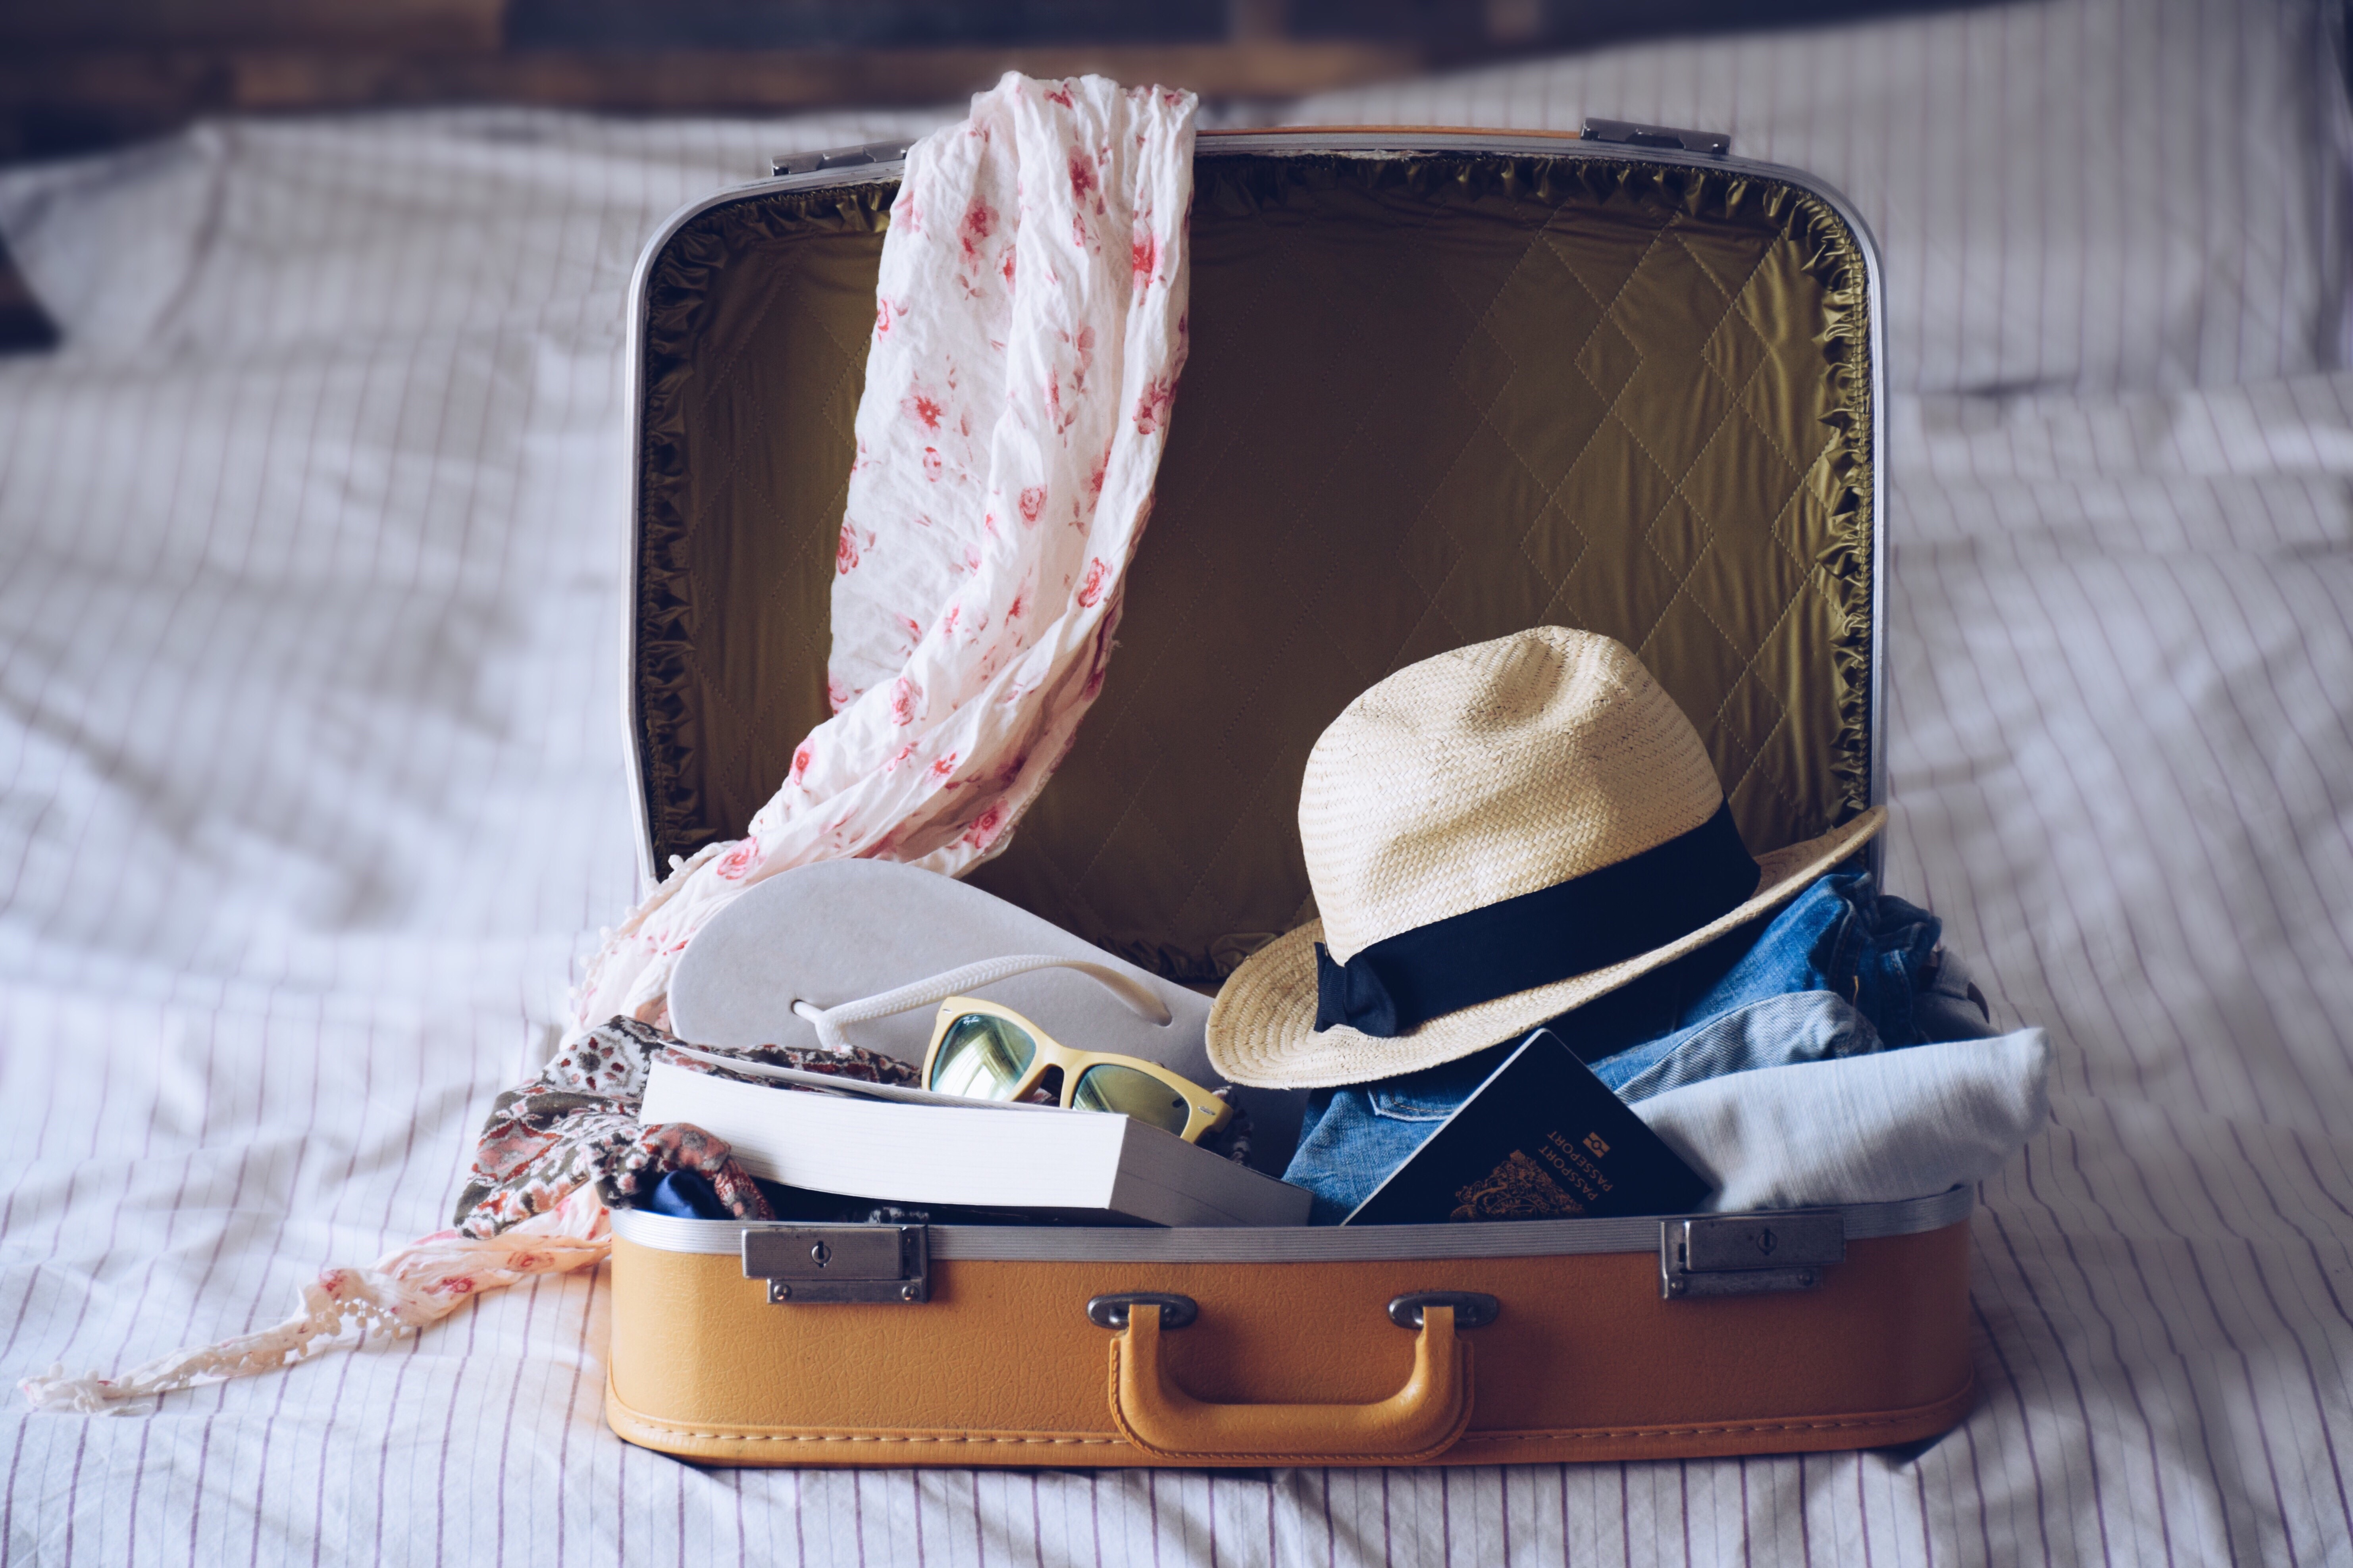 Packing for international travel doesn't need to be stressful!